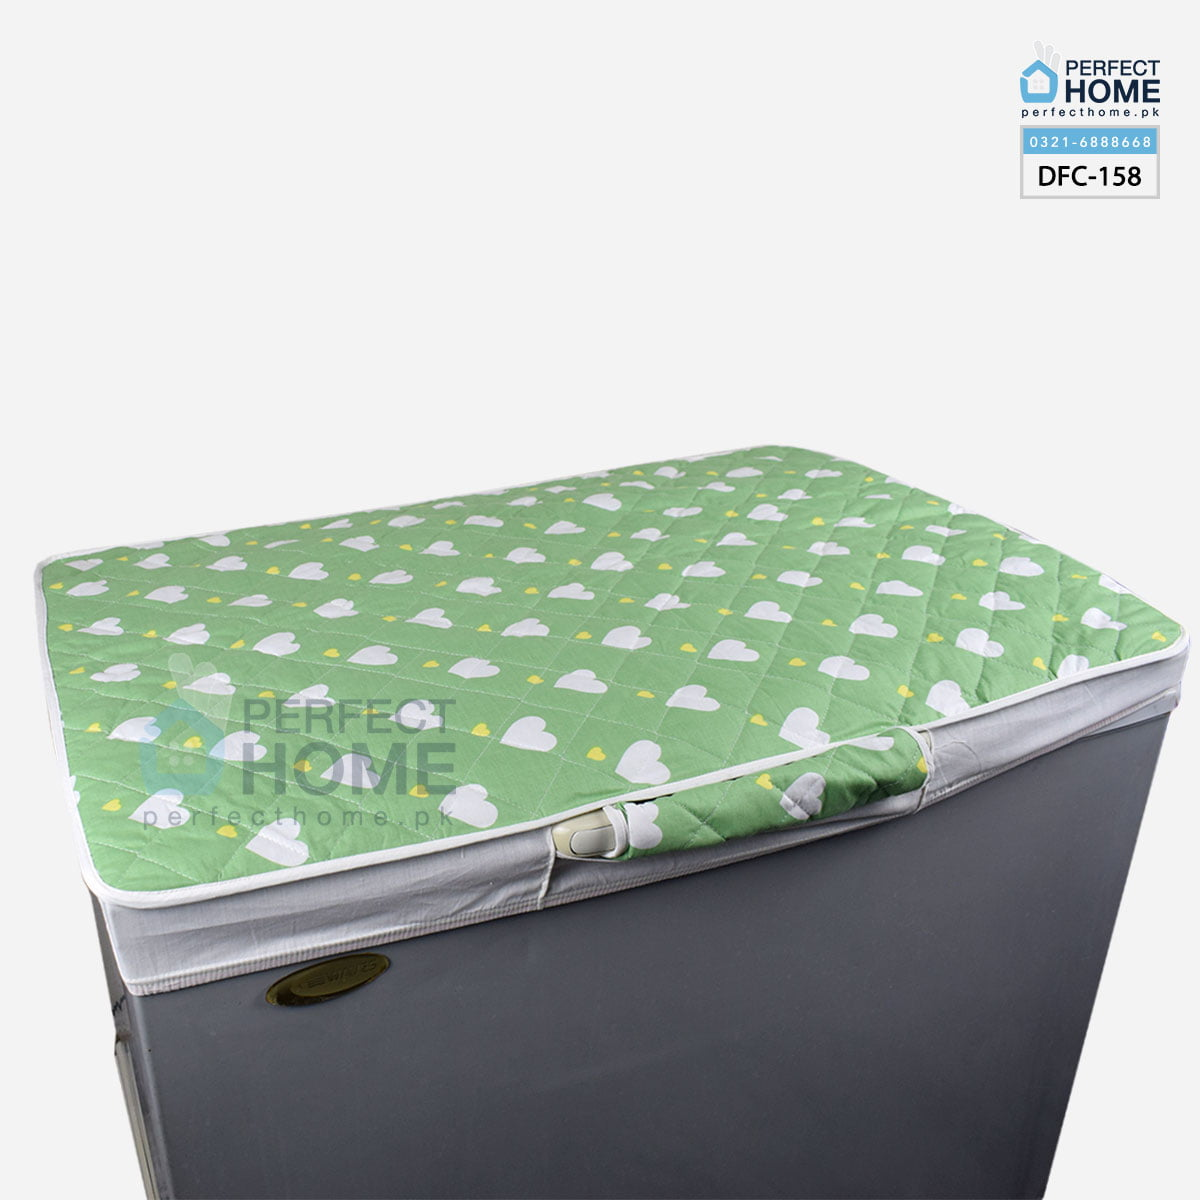 Dfc 158 Deep Freezer Cover Perfecthome